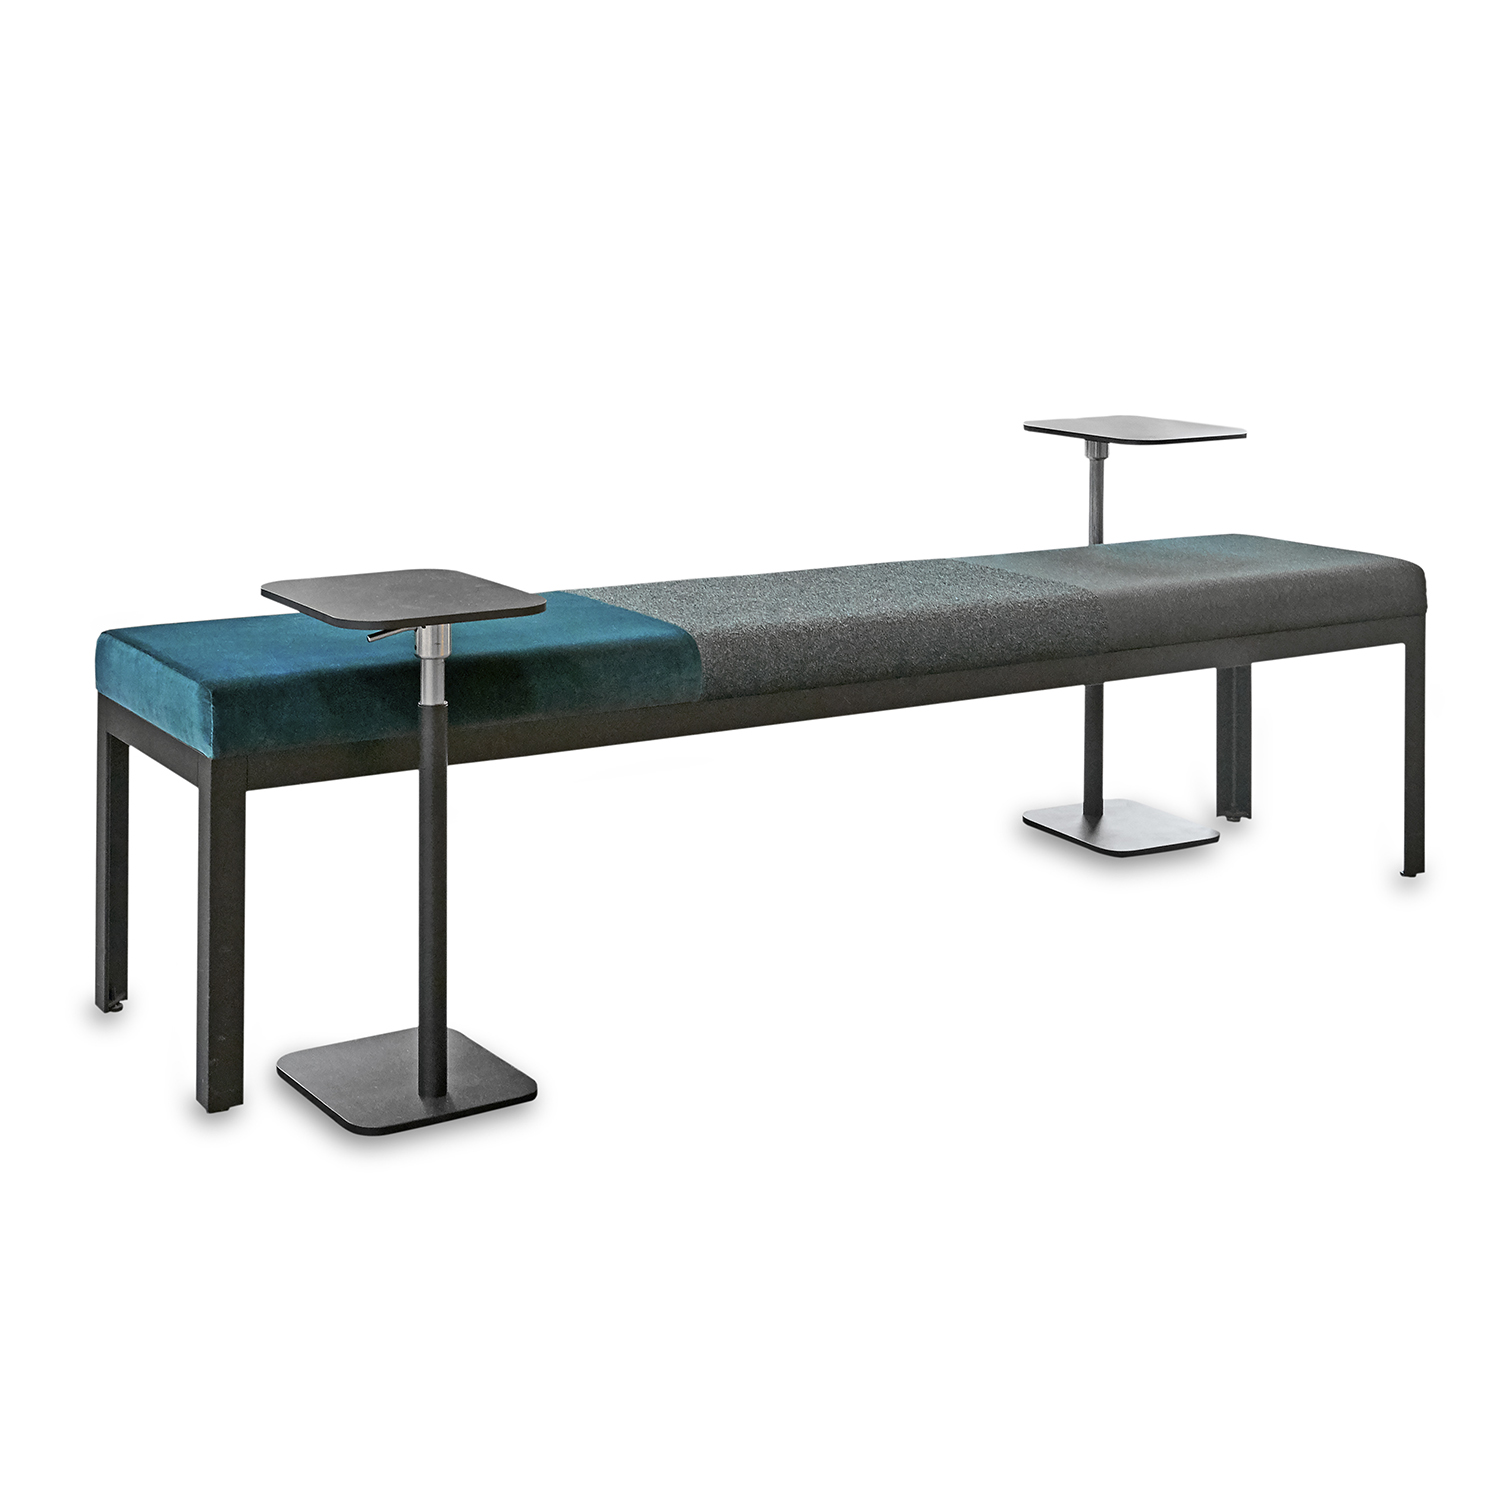 Fabulous Kant Bench Benches Stools Hee Welling Icons Of Denmark Machost Co Dining Chair Design Ideas Machostcouk